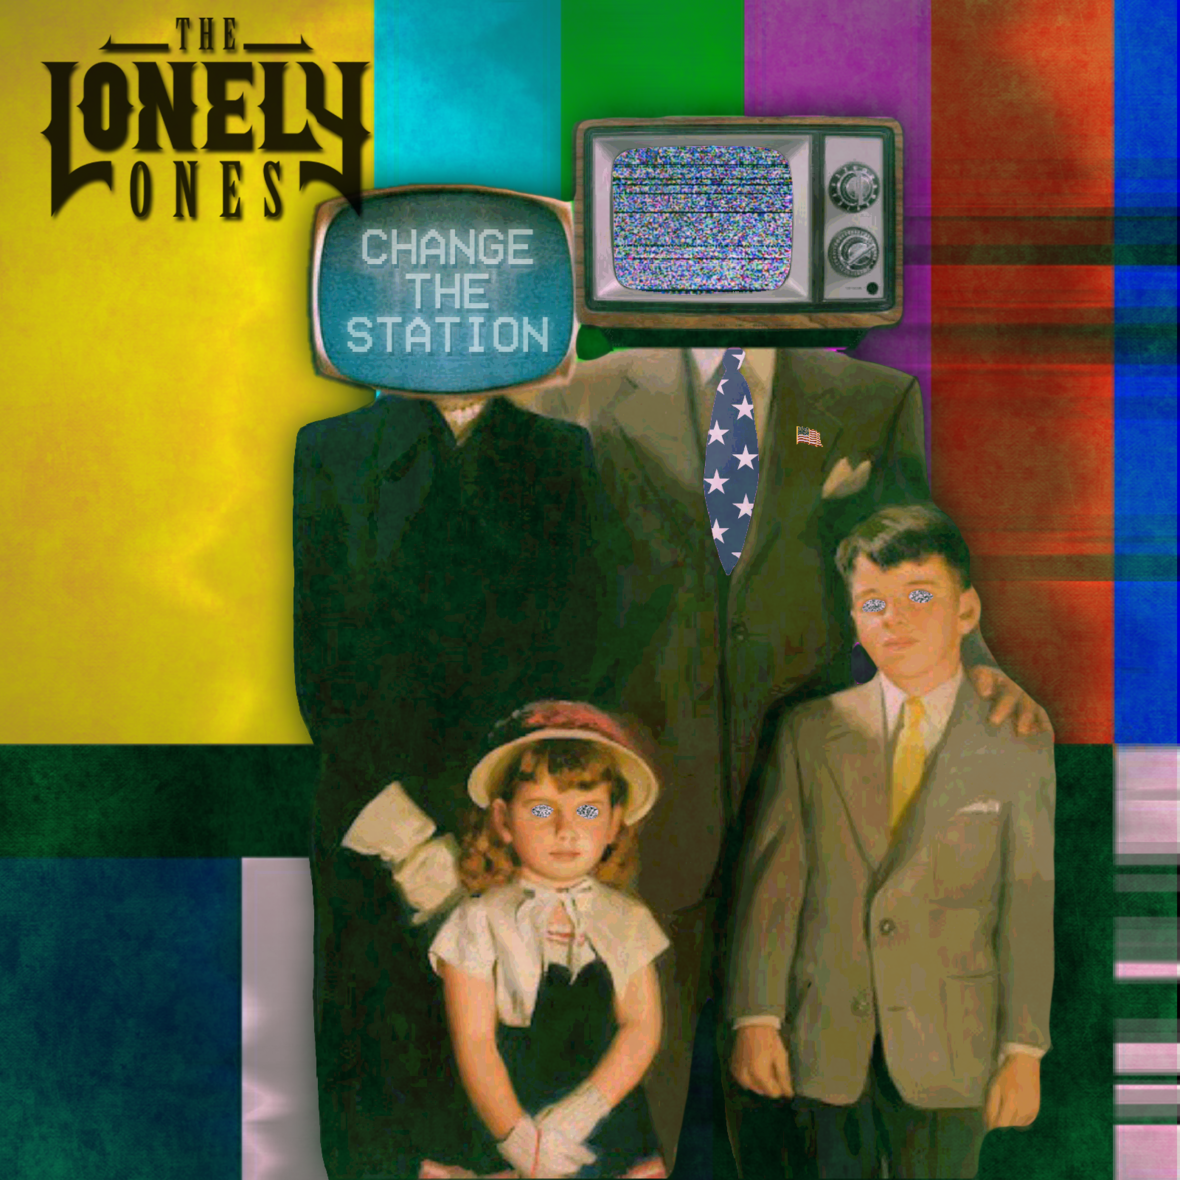 The Lonely Ones Change The Station Art